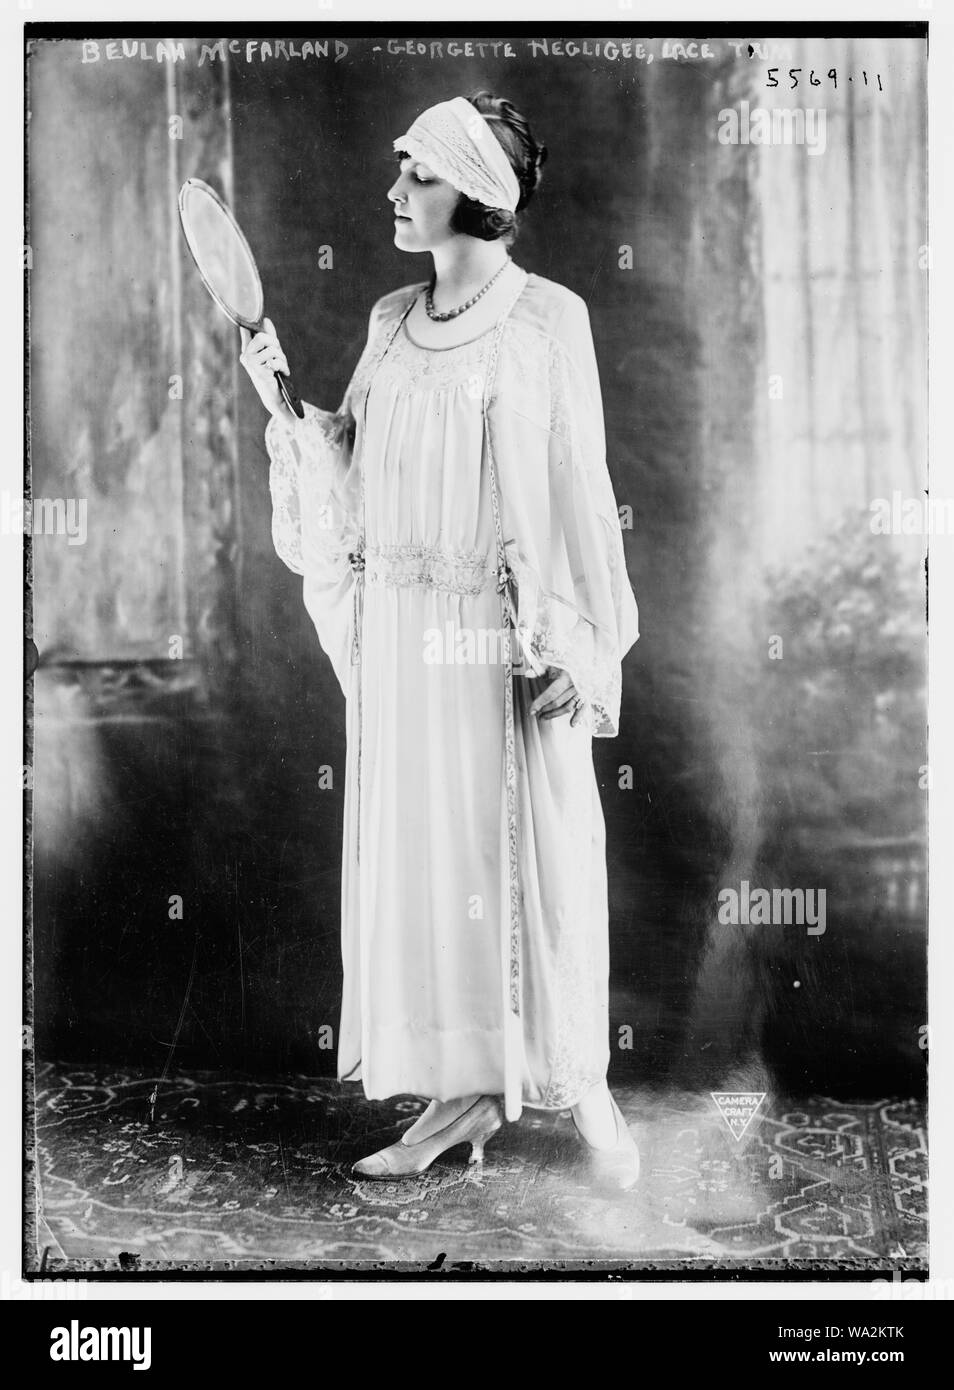 Beulah McFarland, Georgette negligee, lace Stock Photo